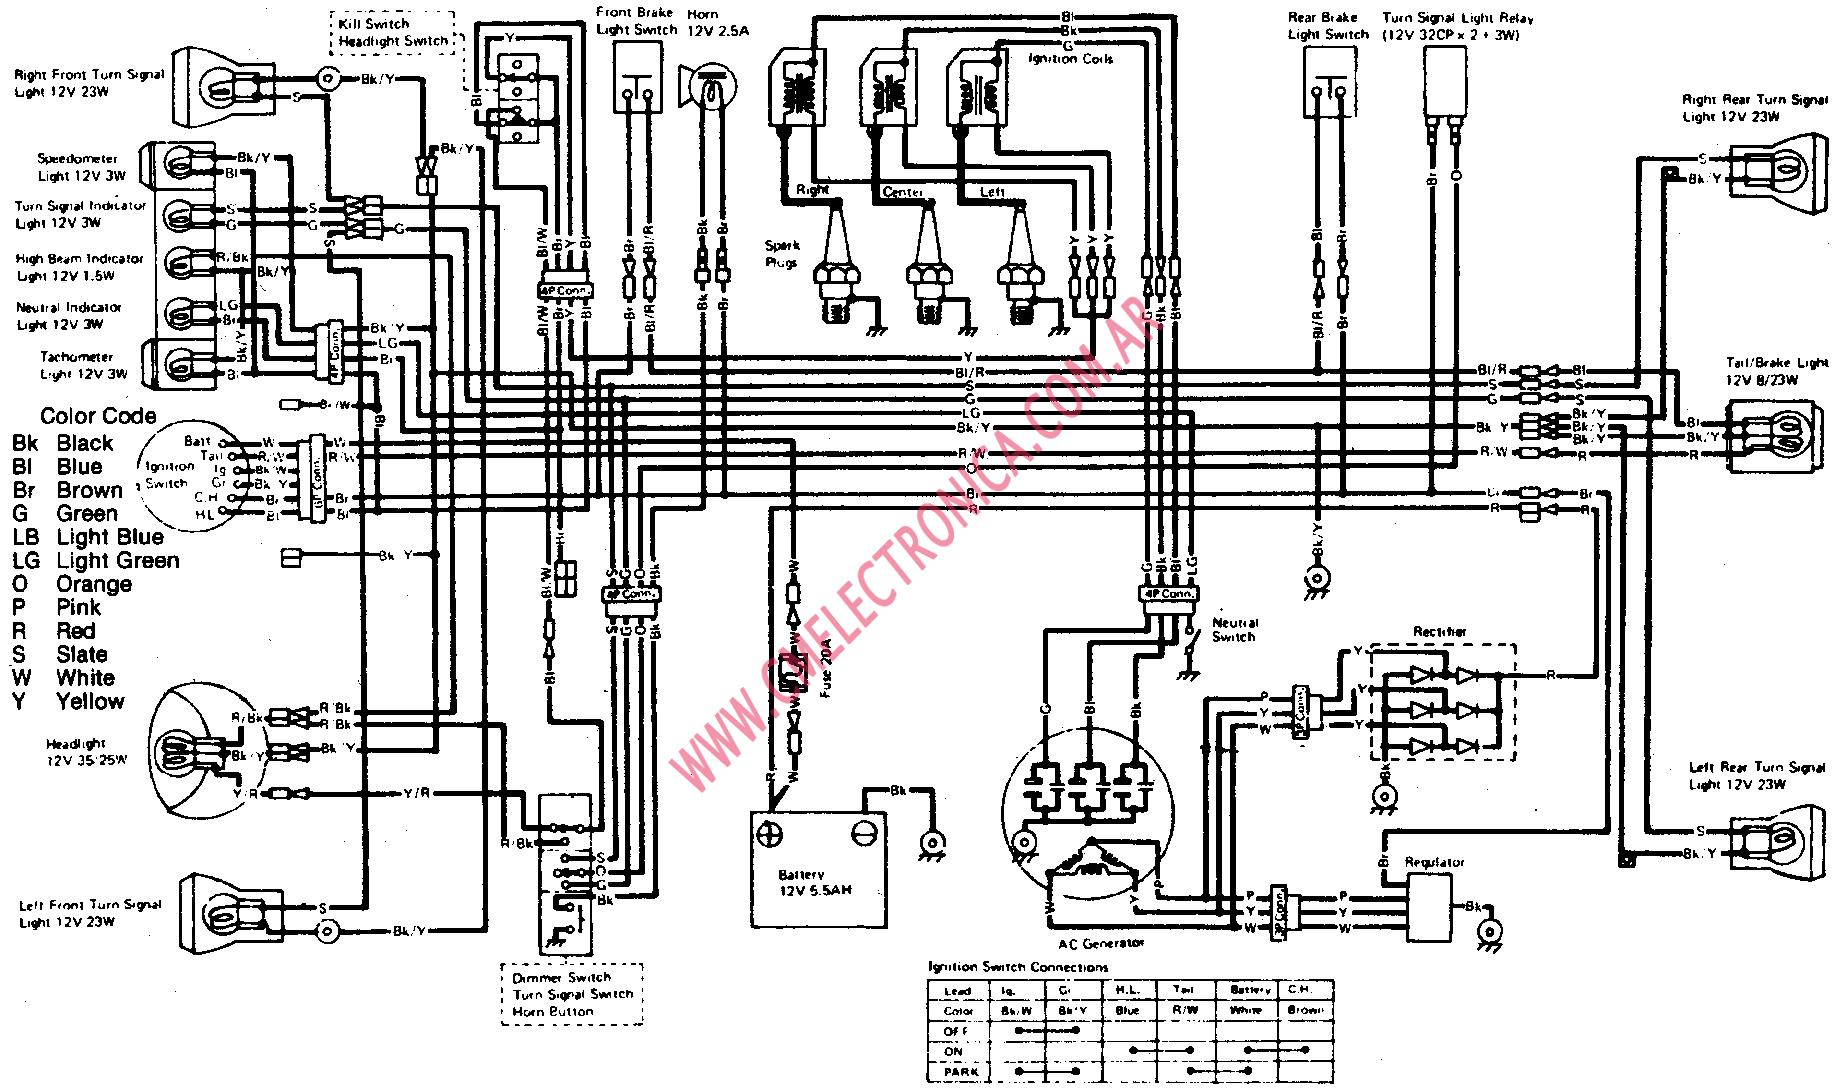 [DIAGRAM] Wiring Diagram For Polaris Predator 90 FULL